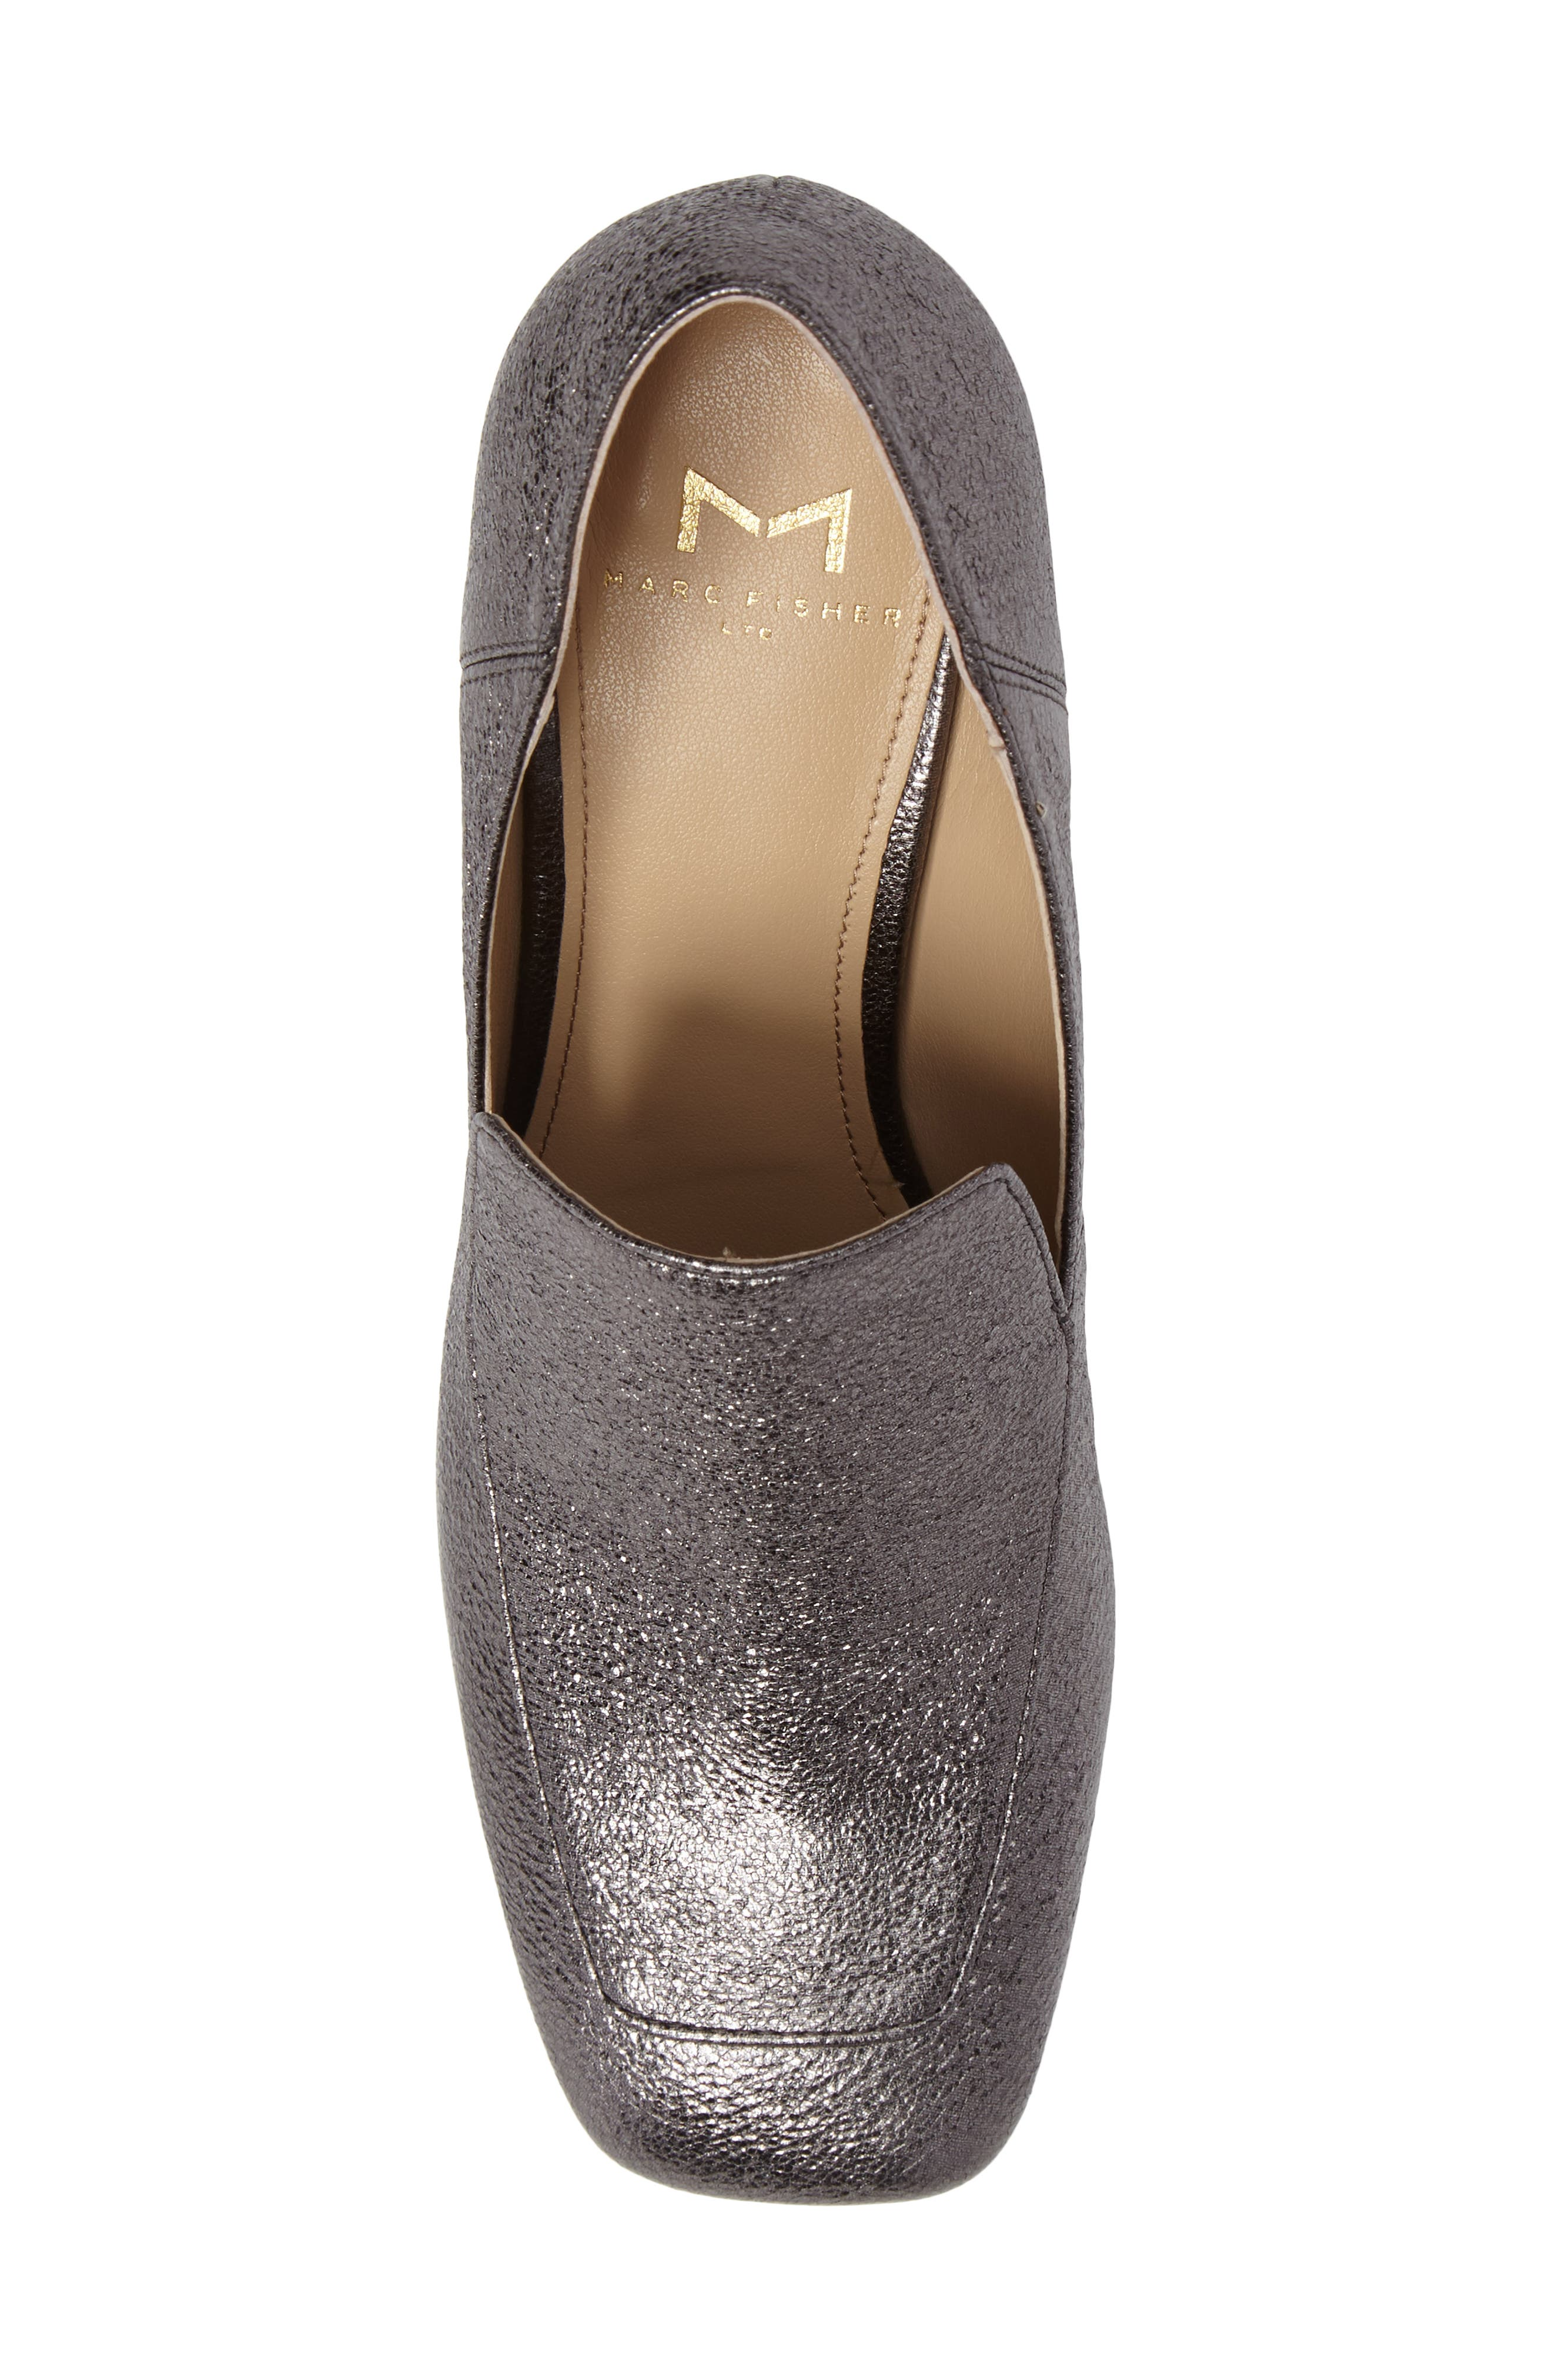 Marlo Loafer Pump,                             Alternate thumbnail 24, color,